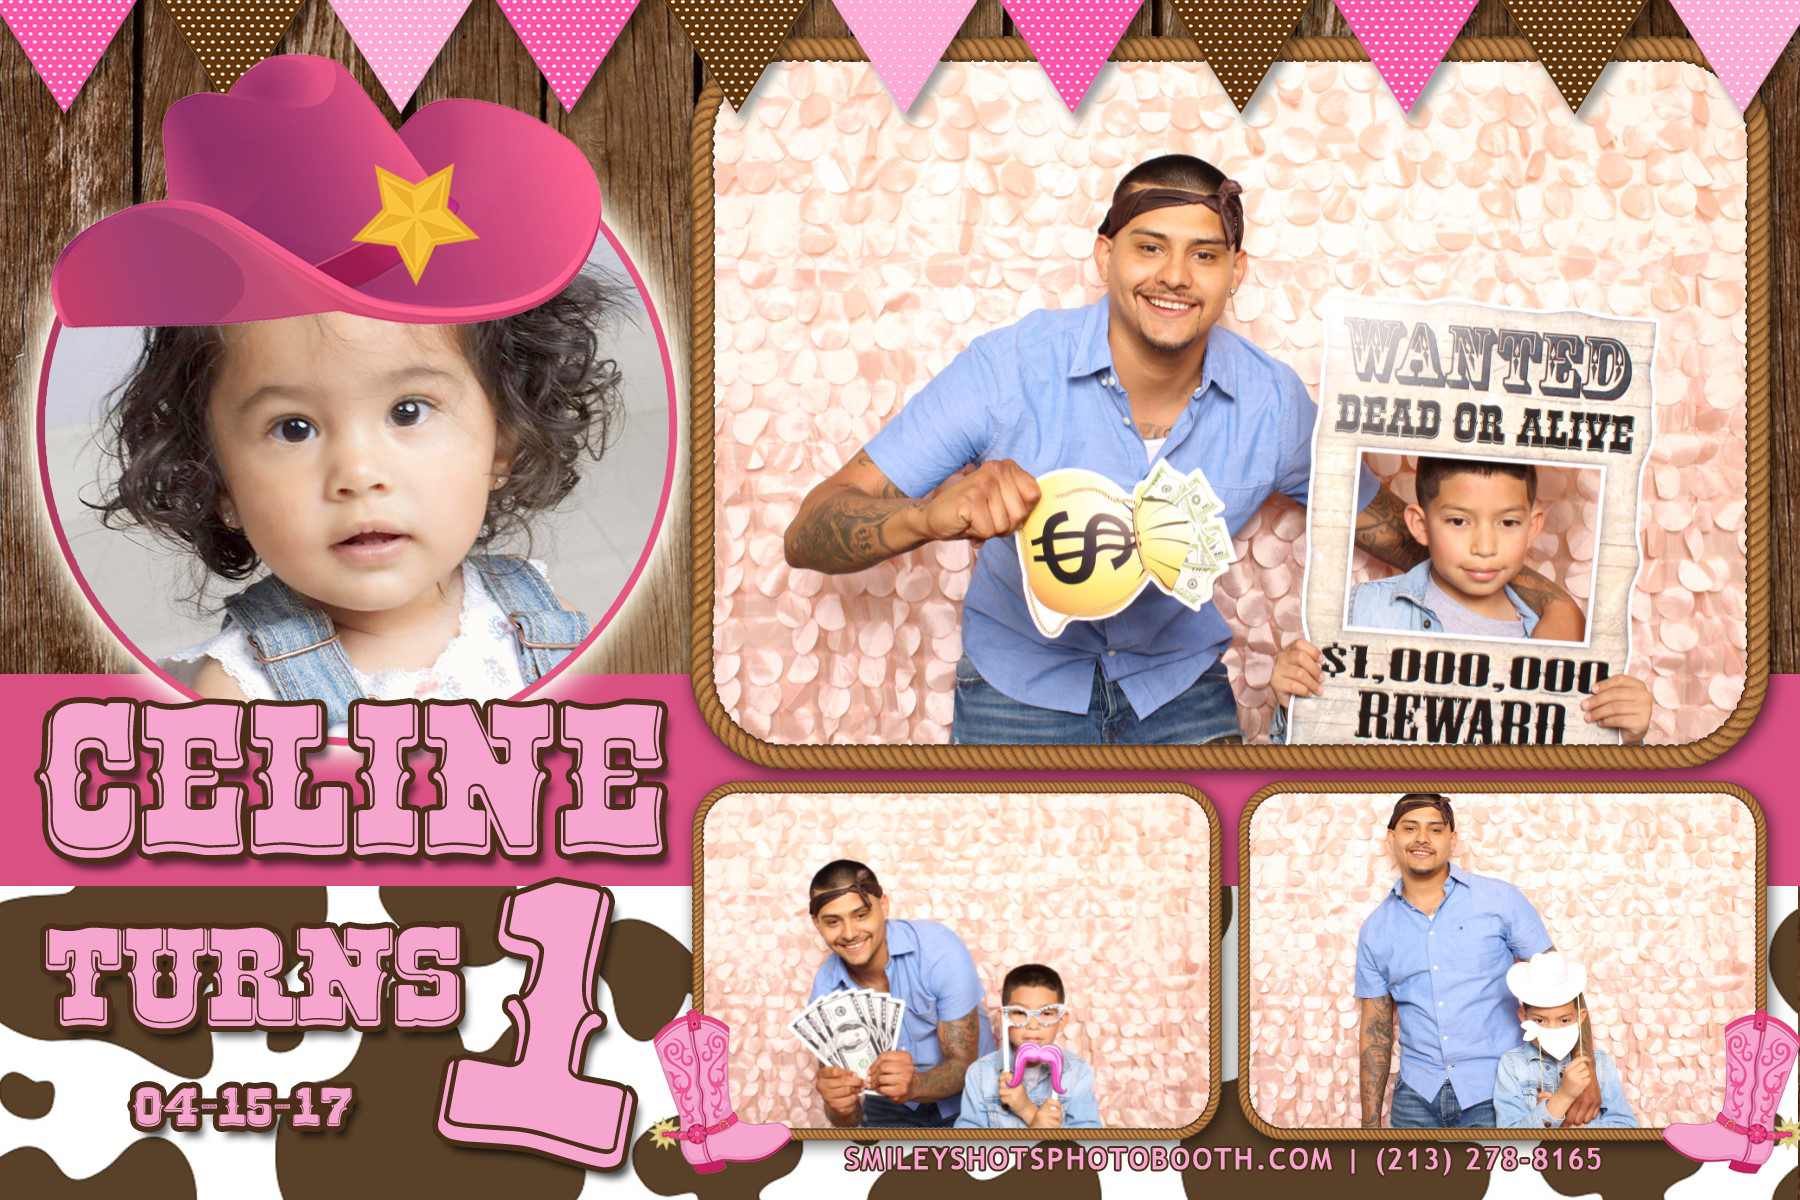 Celine turns 1 Smiley Shots Photo Booth Photobooth (37).png